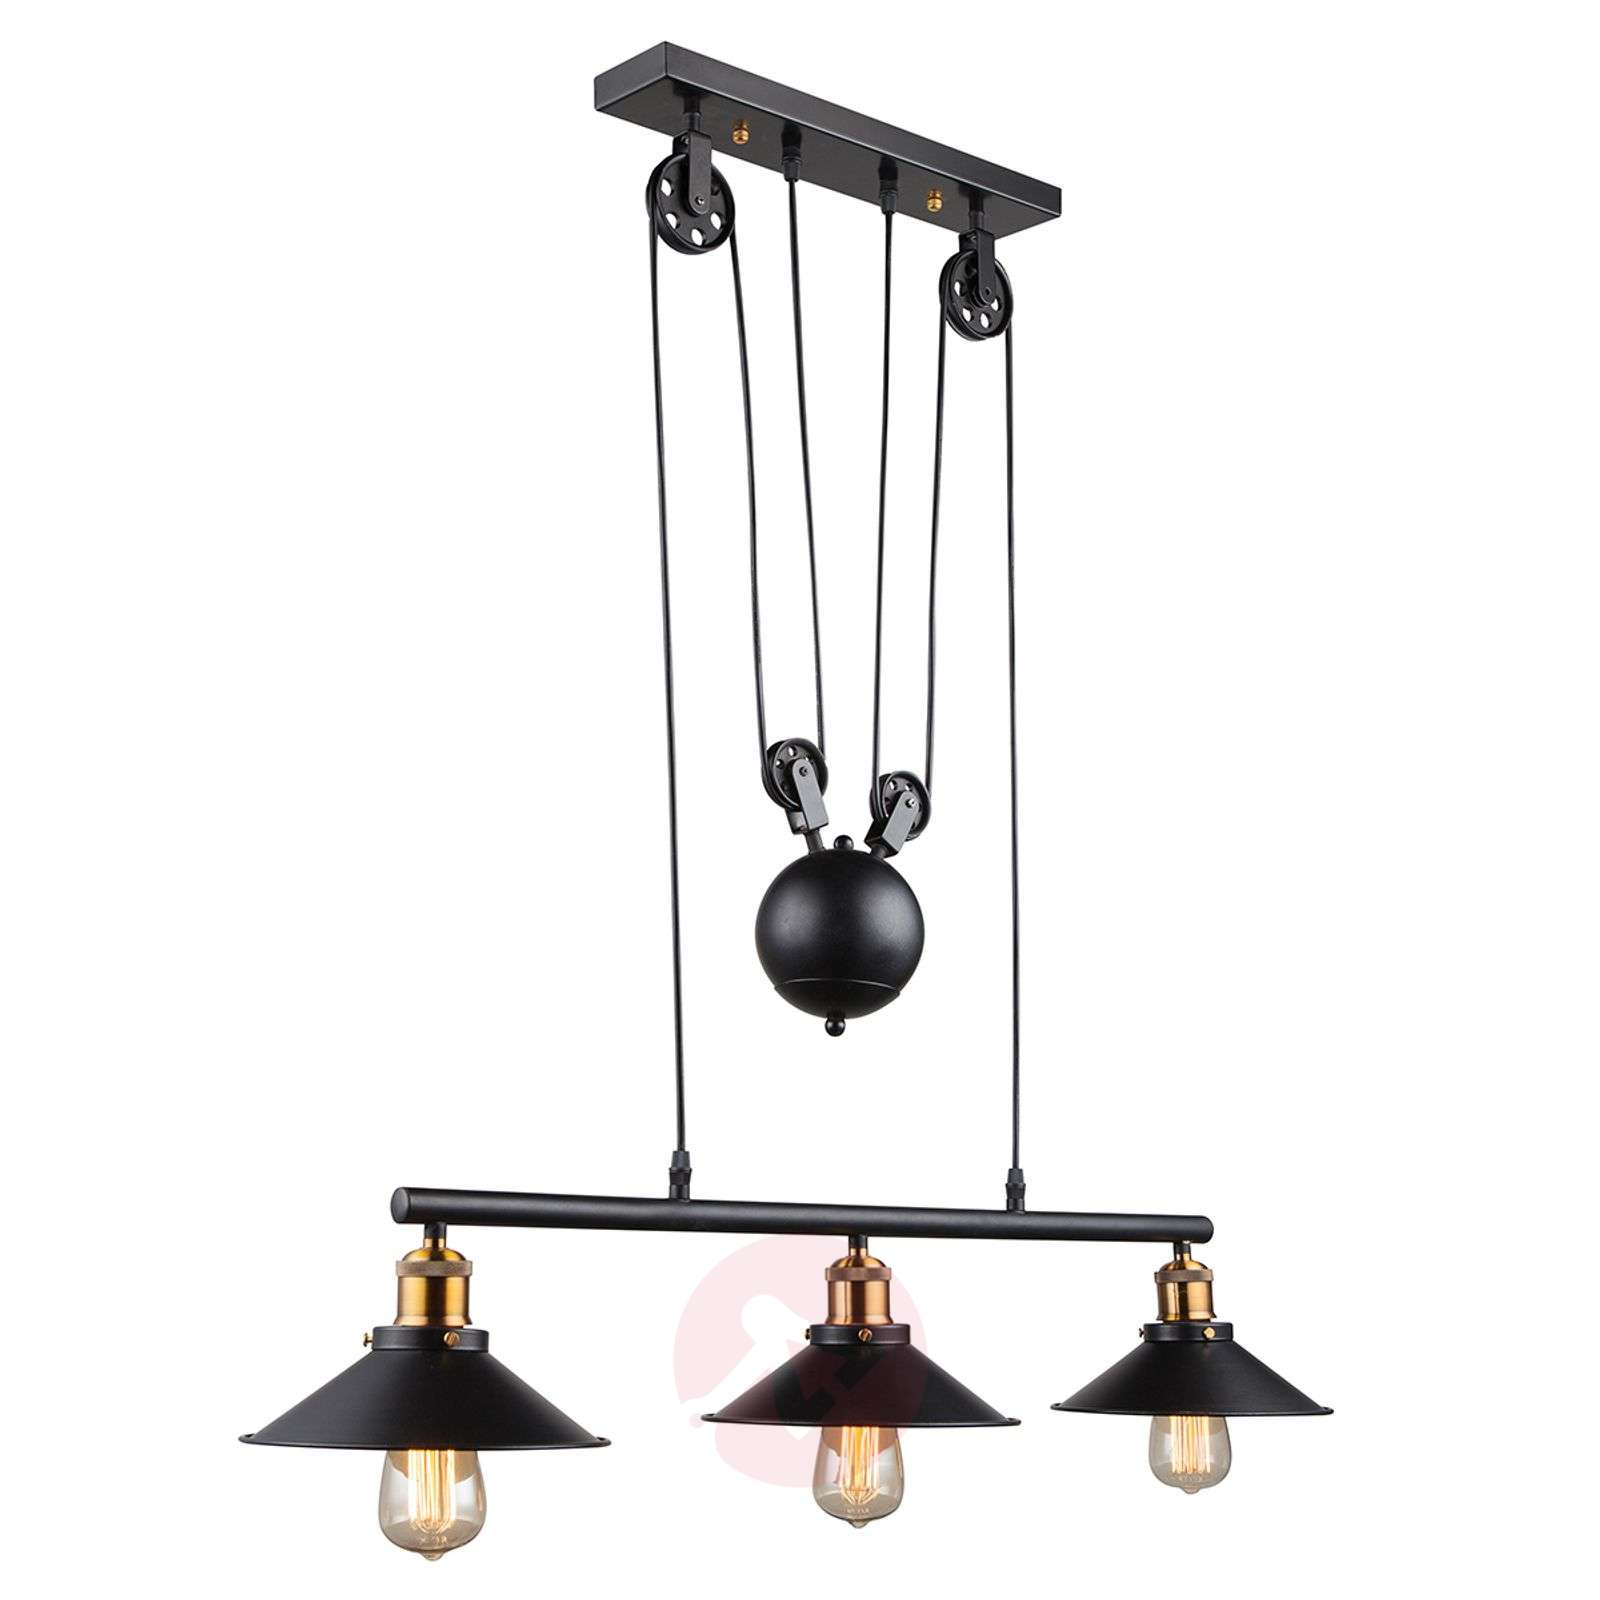 Height Adjustable Led Pendant Light Drop: 3-bulb Pendant Light Viktor - Height-adjustable